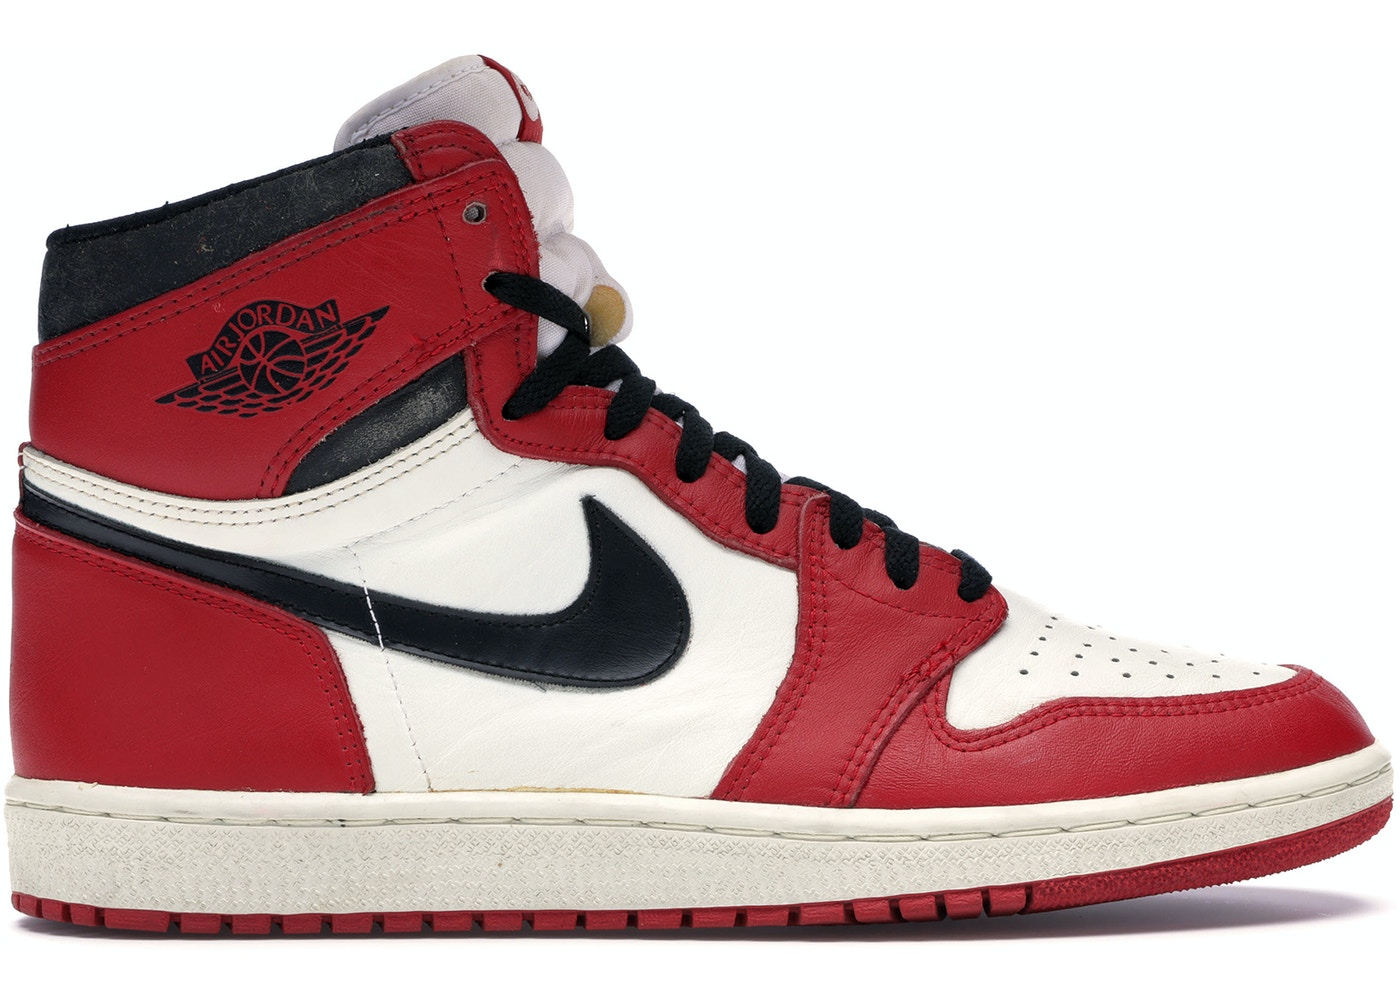 low priced facb0 f3166 Jordan 1 OG Chicago (1985)